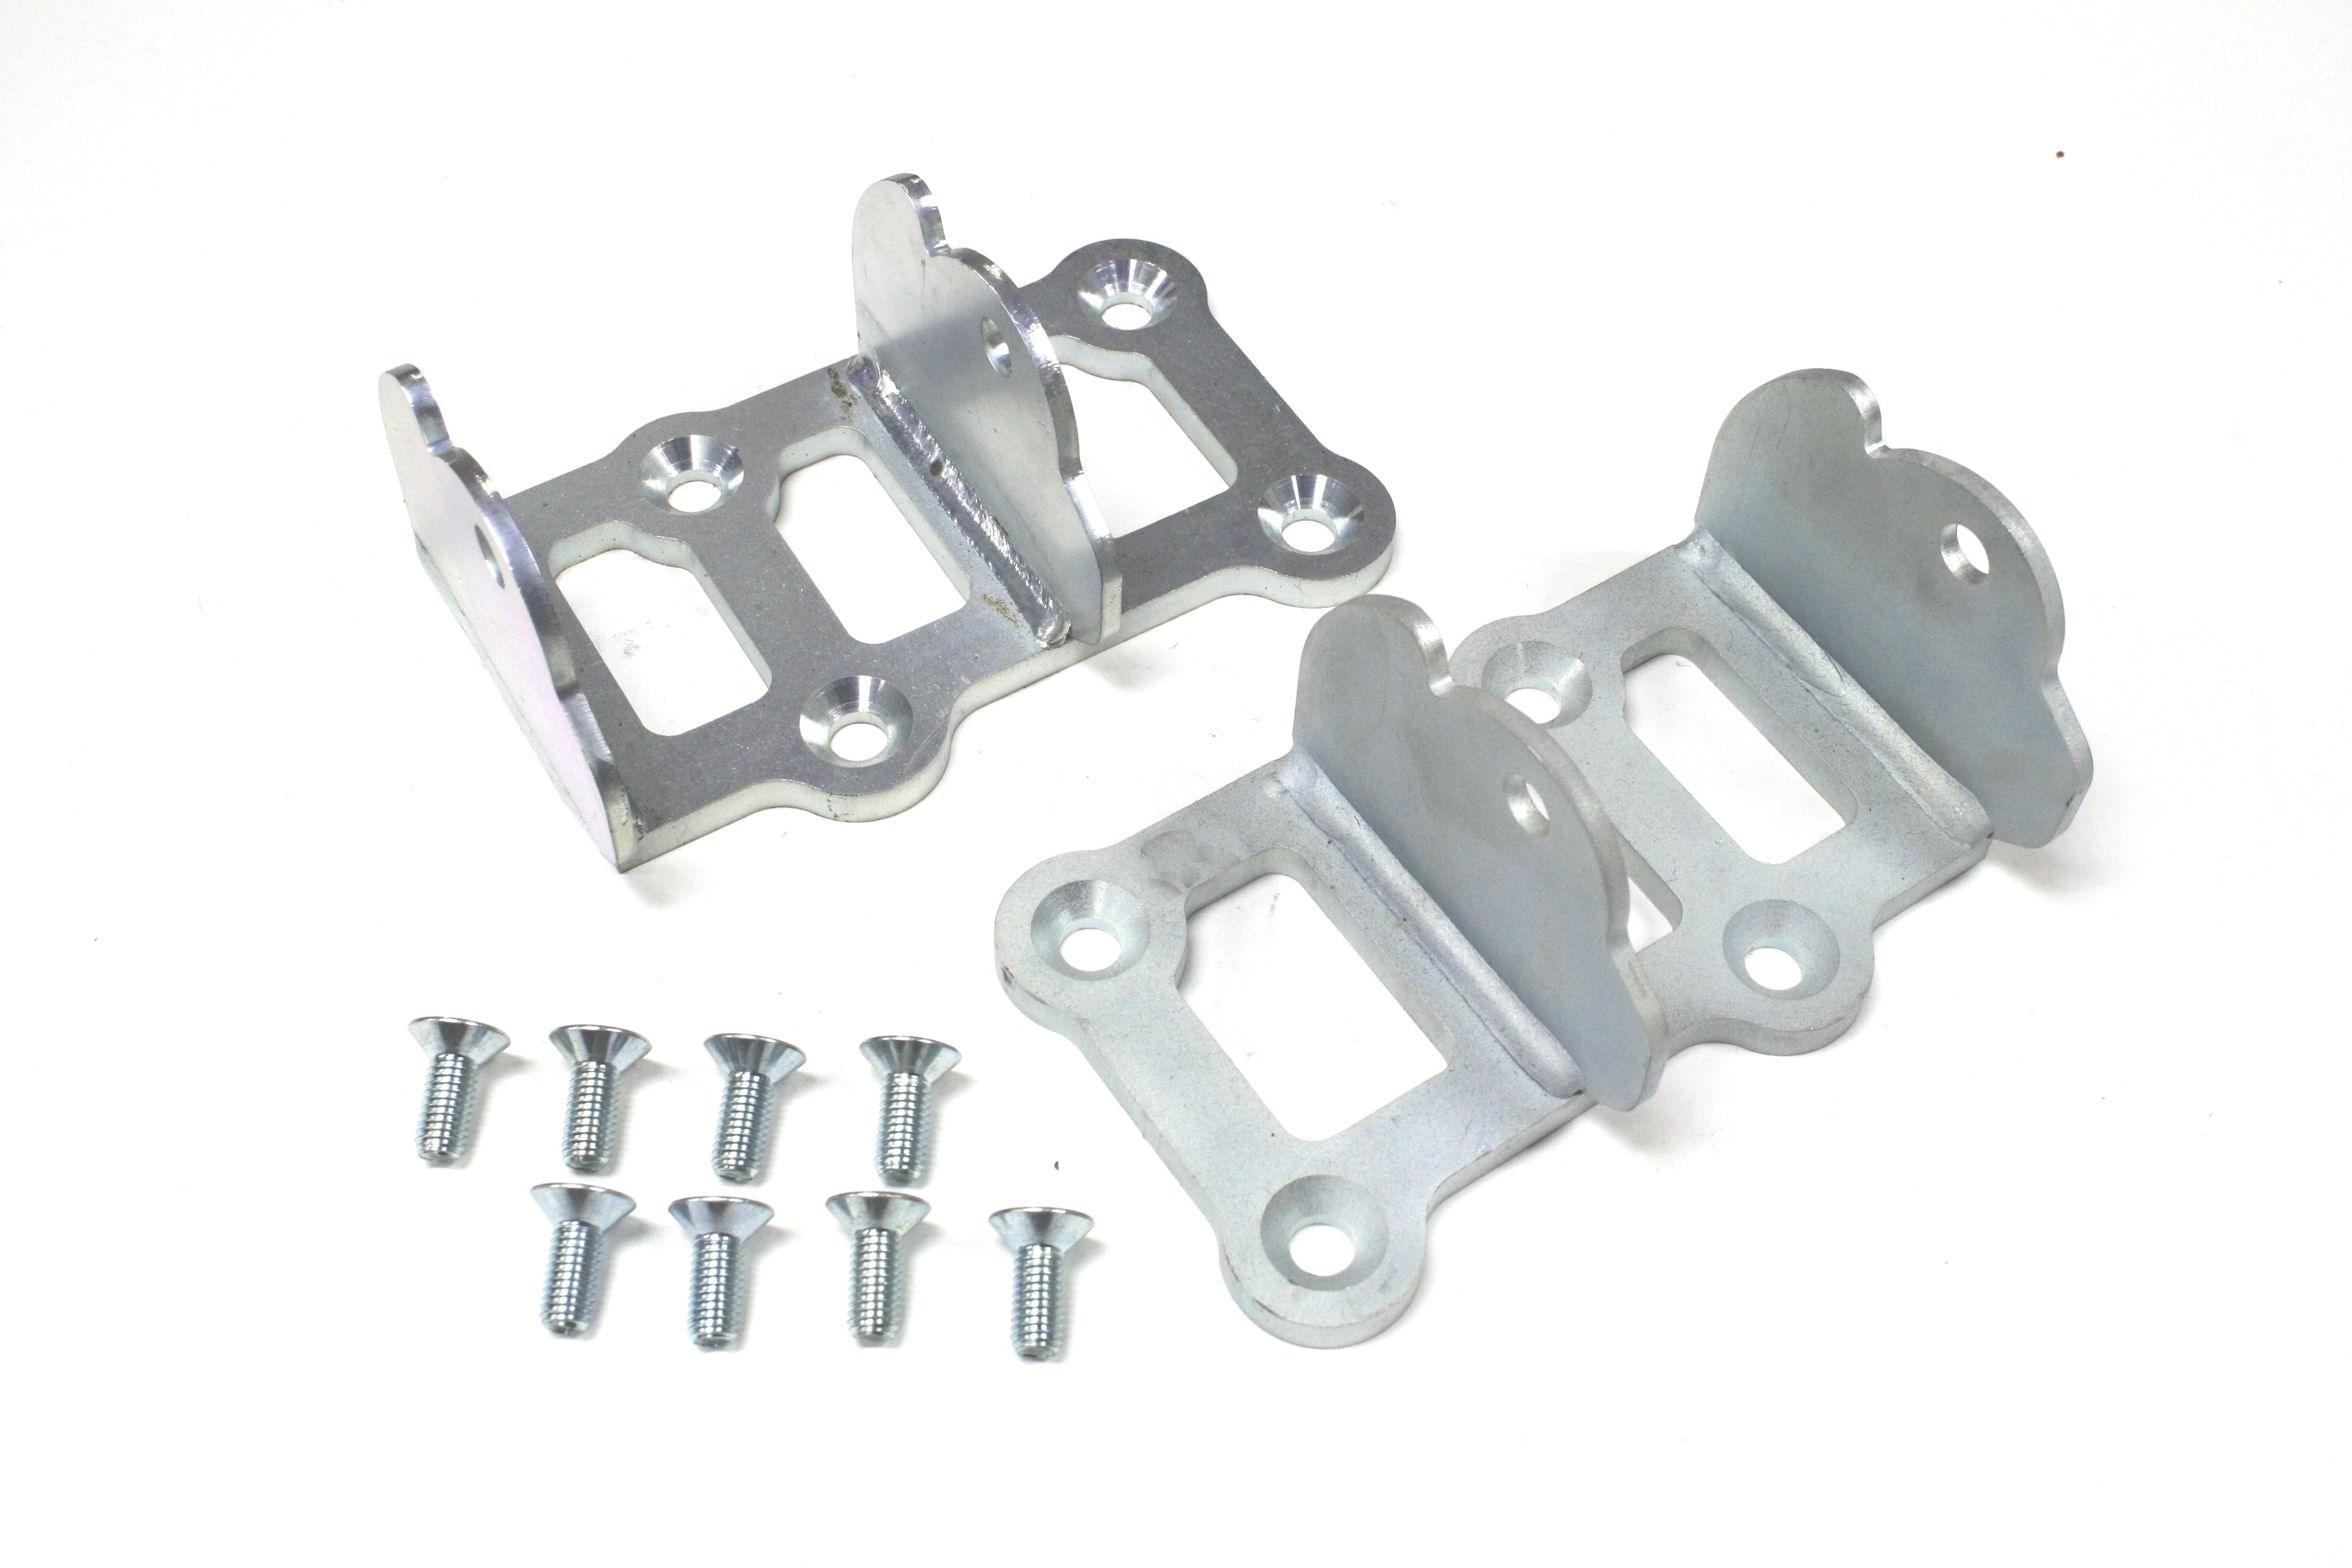 Doug's Headers SK101 Motor Mount Adapter Plate Kit for LS1/LS6 GM engines into 73-87 C10 Chevy Trucks